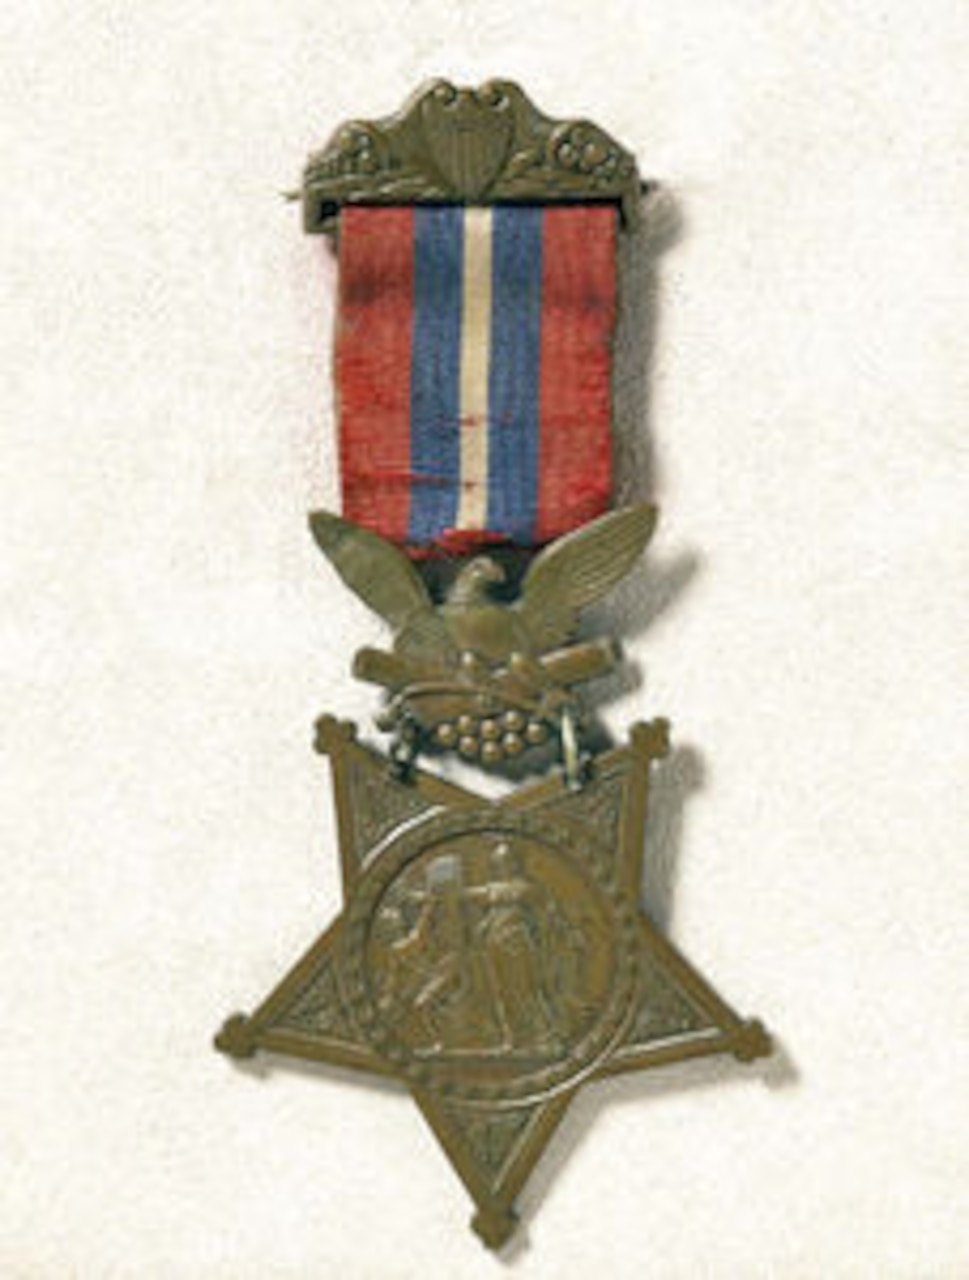 A Civil War-era Medal of Honor with red, white and blue ribbon.